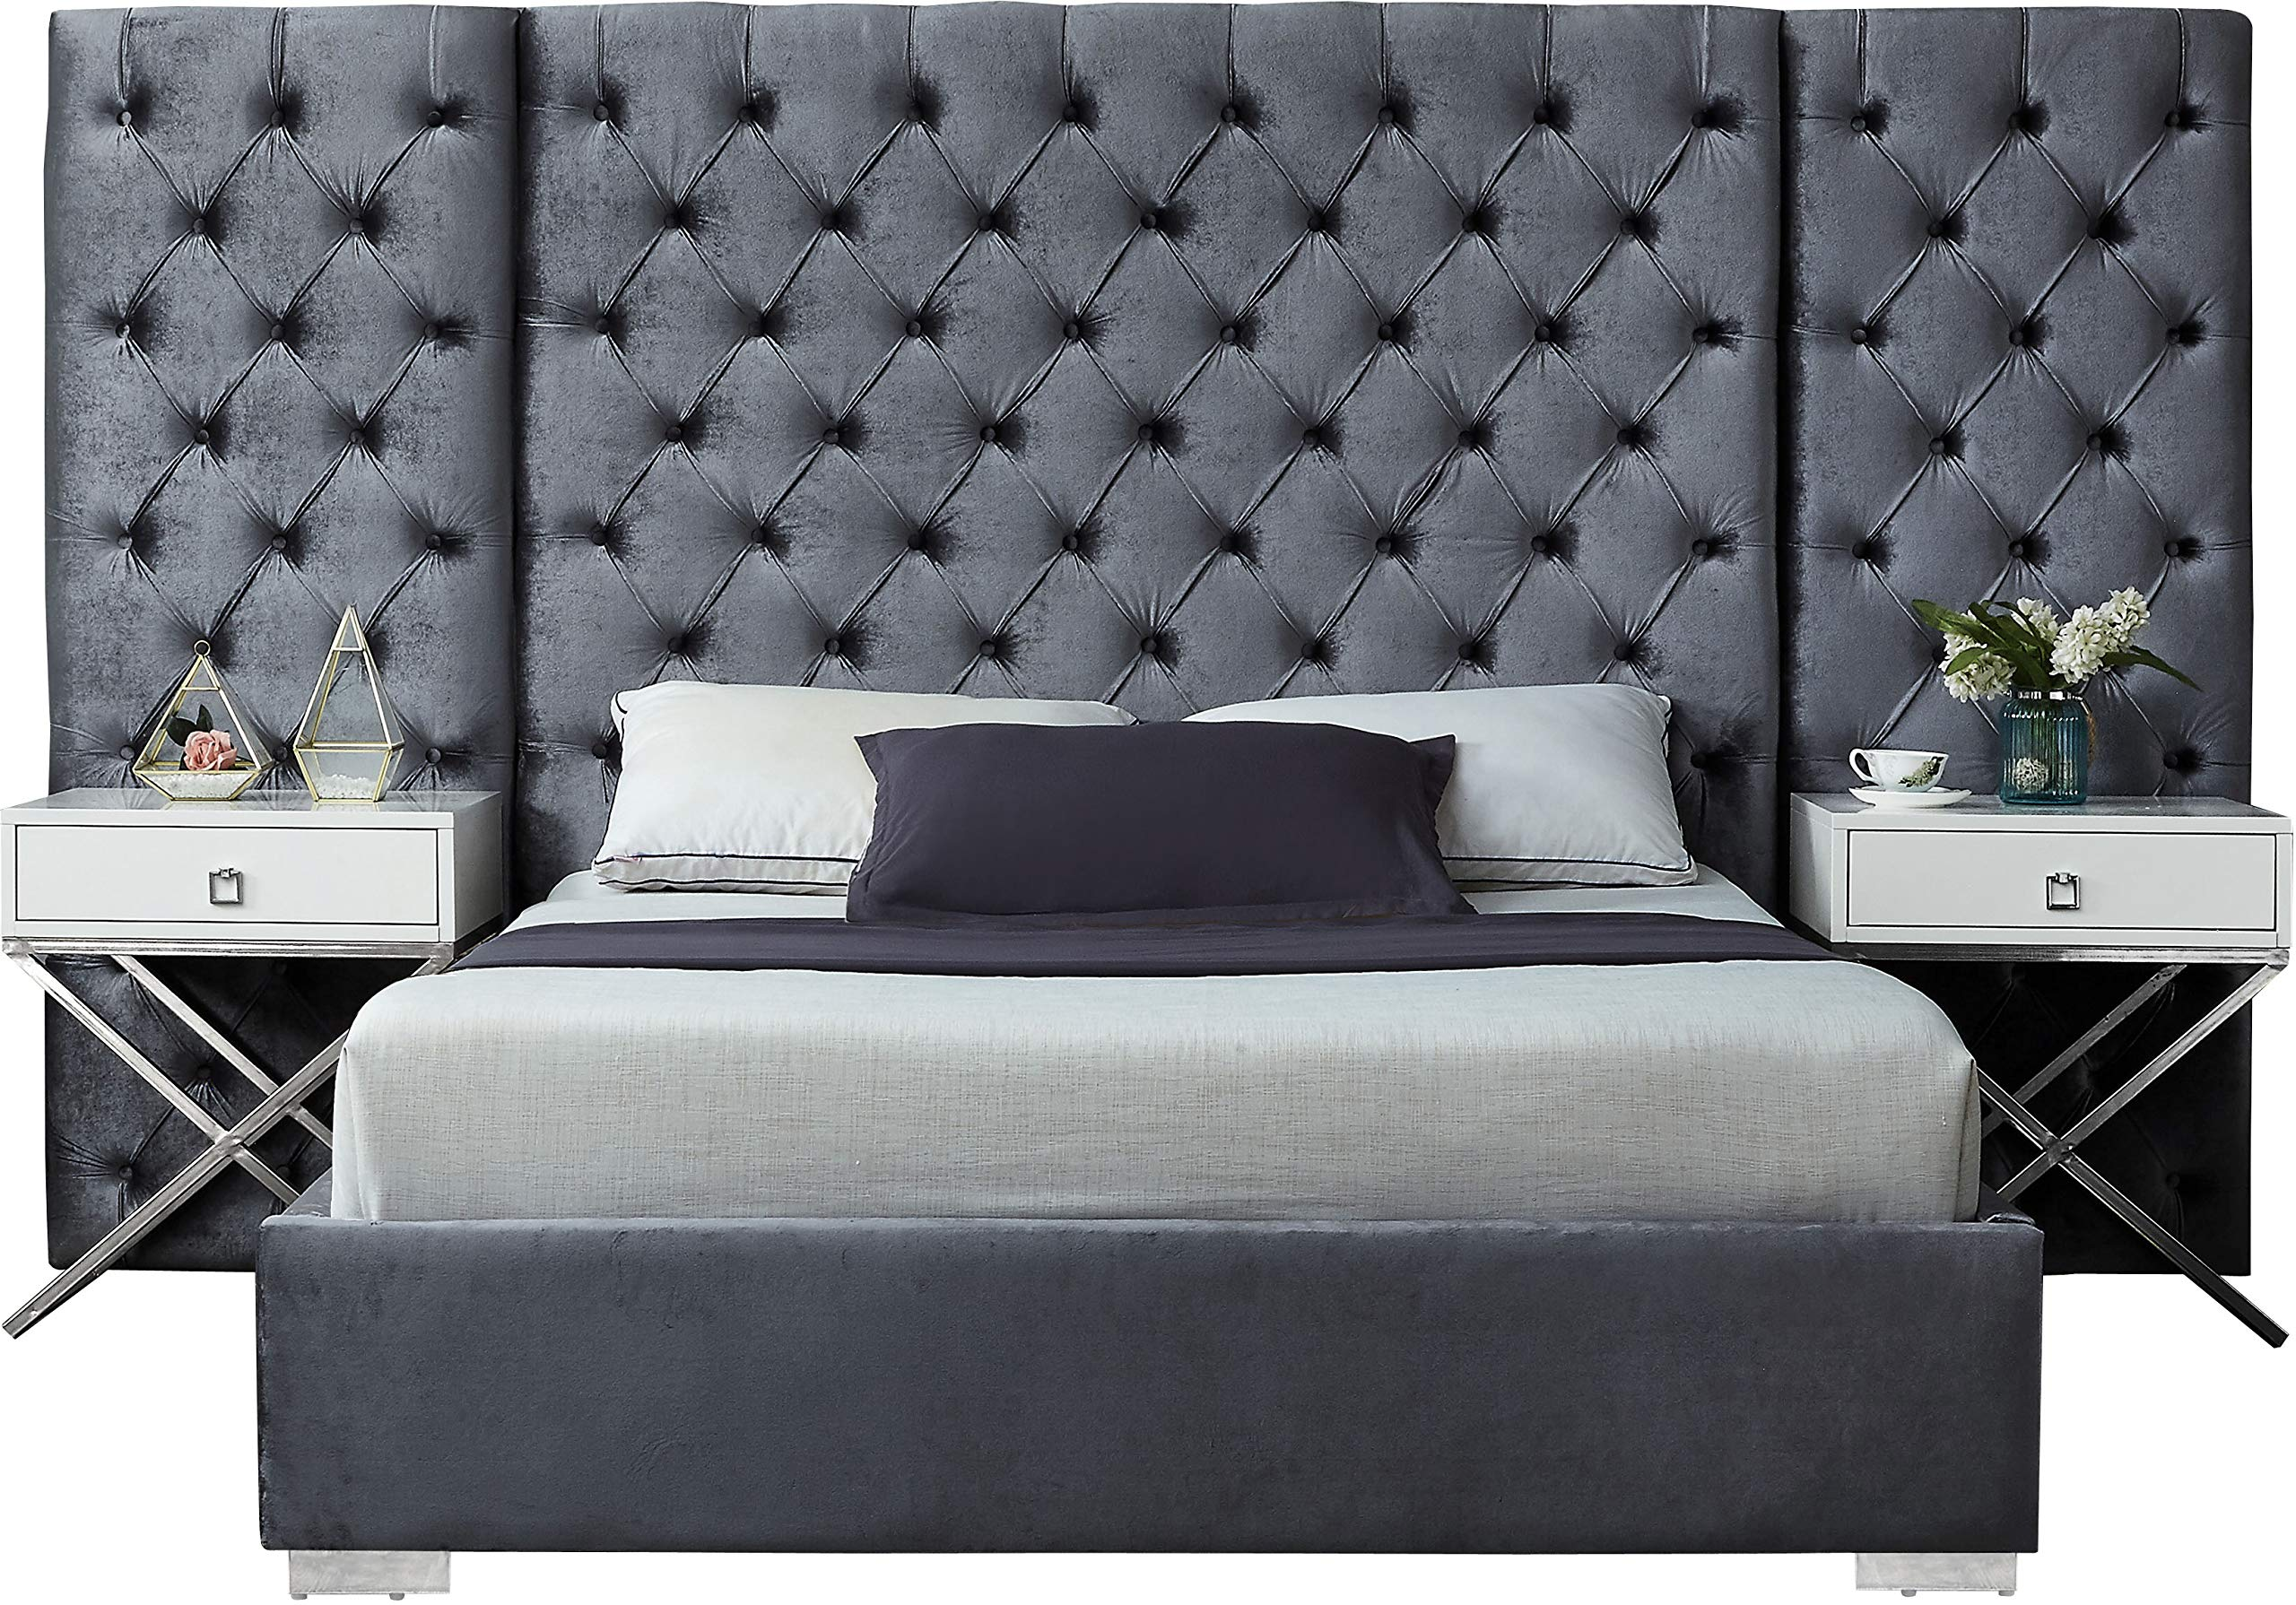 Meridian Furniture Grande Collection Modern | Contemporary Grey Velvet Upholstered Bed with Deep Tufting, with Polished Chrome Stainless Steel Legs, King, by Meridian Furniture